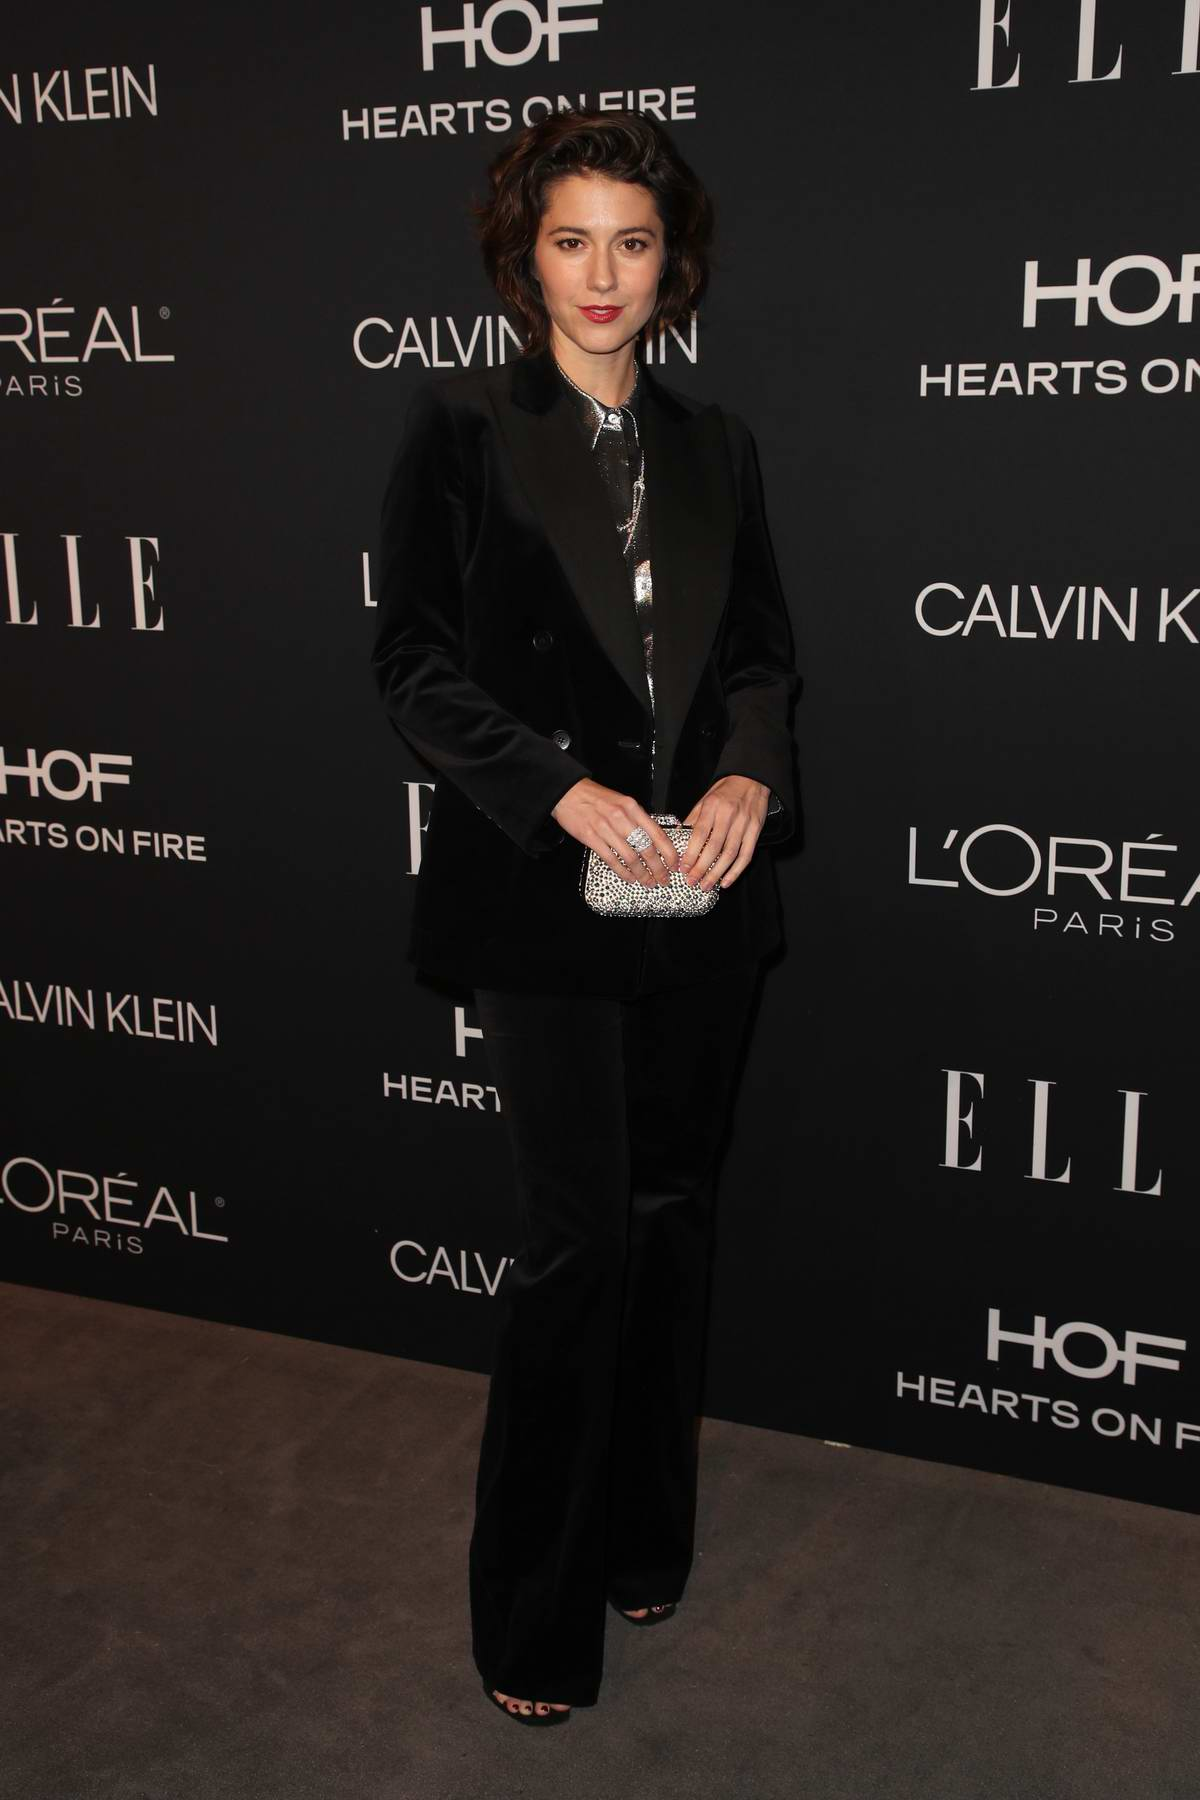 Mary Elizabeth Winstead attends ELLE's 25th Annual Women In Hollywood Celebration at the Four Seasons Hotel in Beverly Hills, Los Angeles